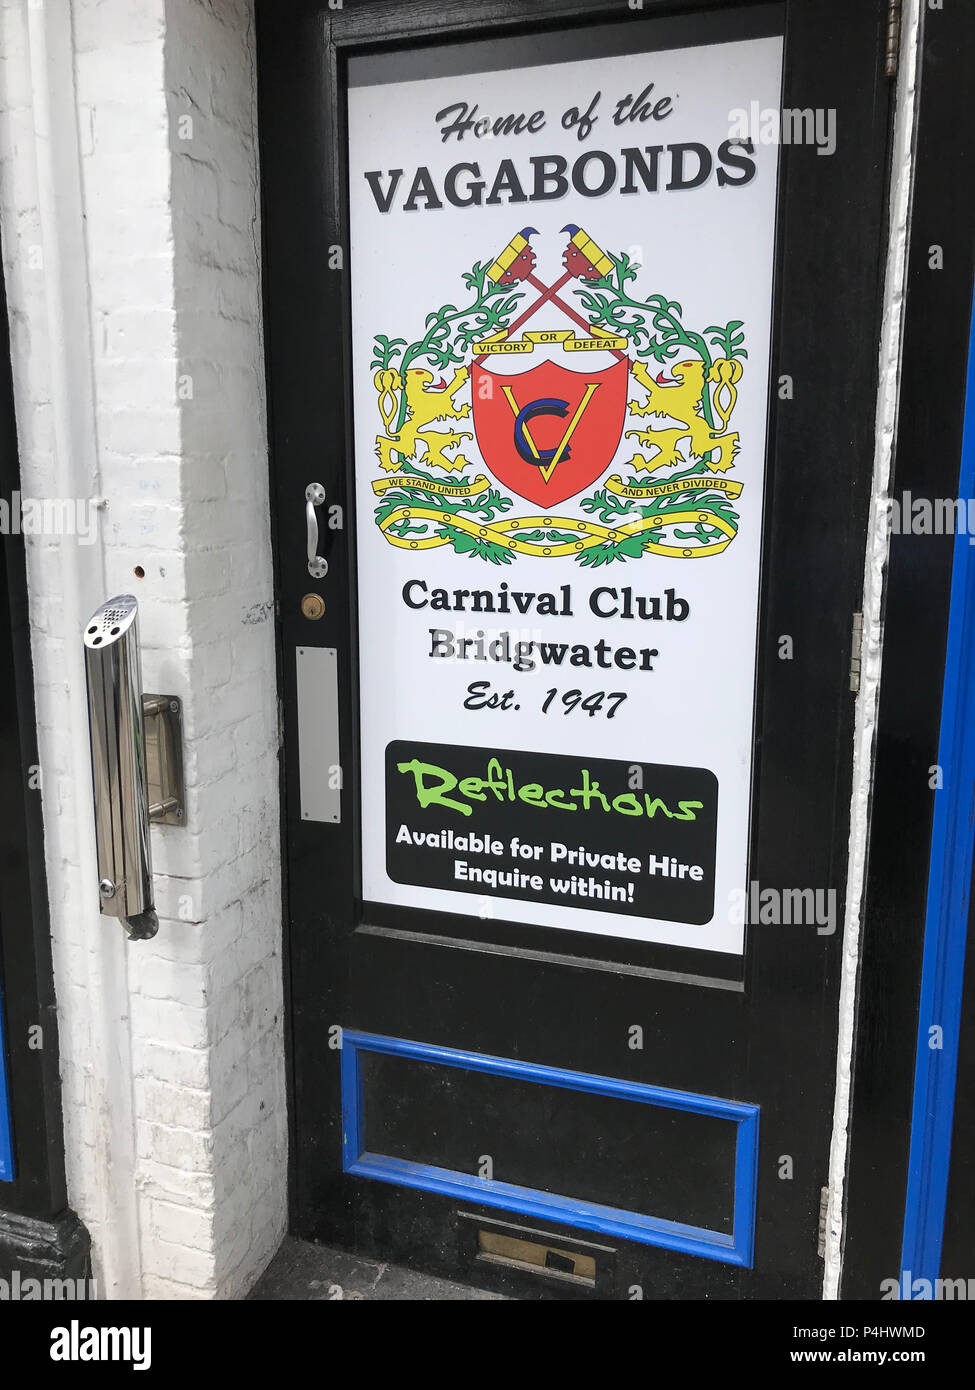 Home of the Vagabonds Carnival Club, high st, Bridgwater - Reflections Club door, Bridgwater Town, Somerset, England, UK Stock Photo